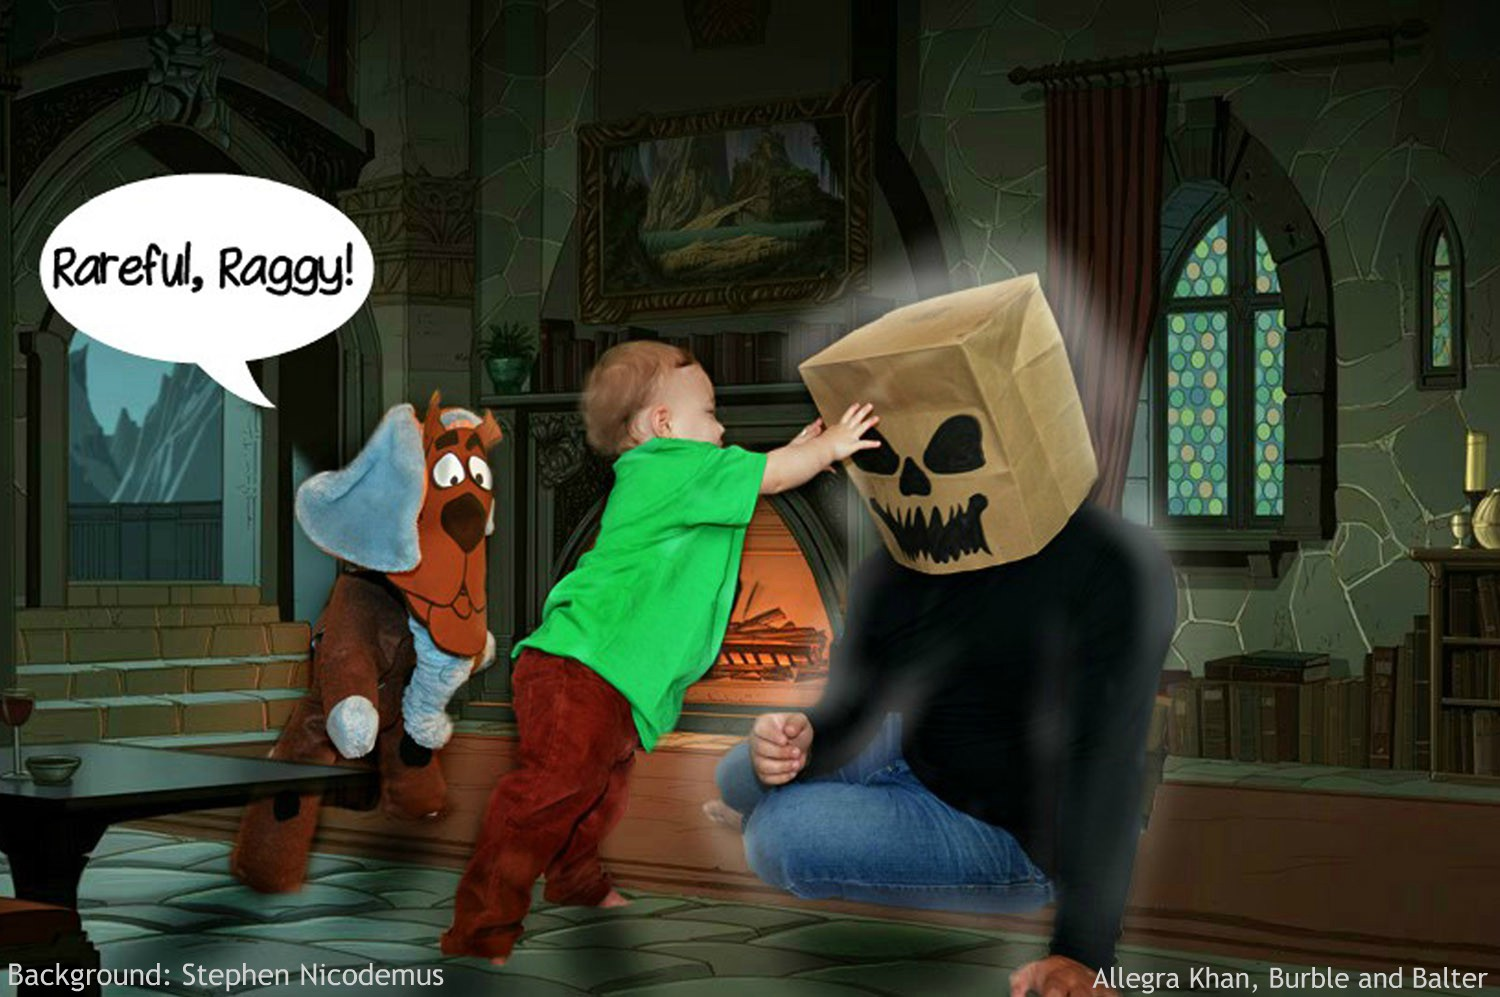 Scooby-Doo-and-Shaggy-7-Costume-Baby-Photoshoot-Burble-and-Balter.jpg